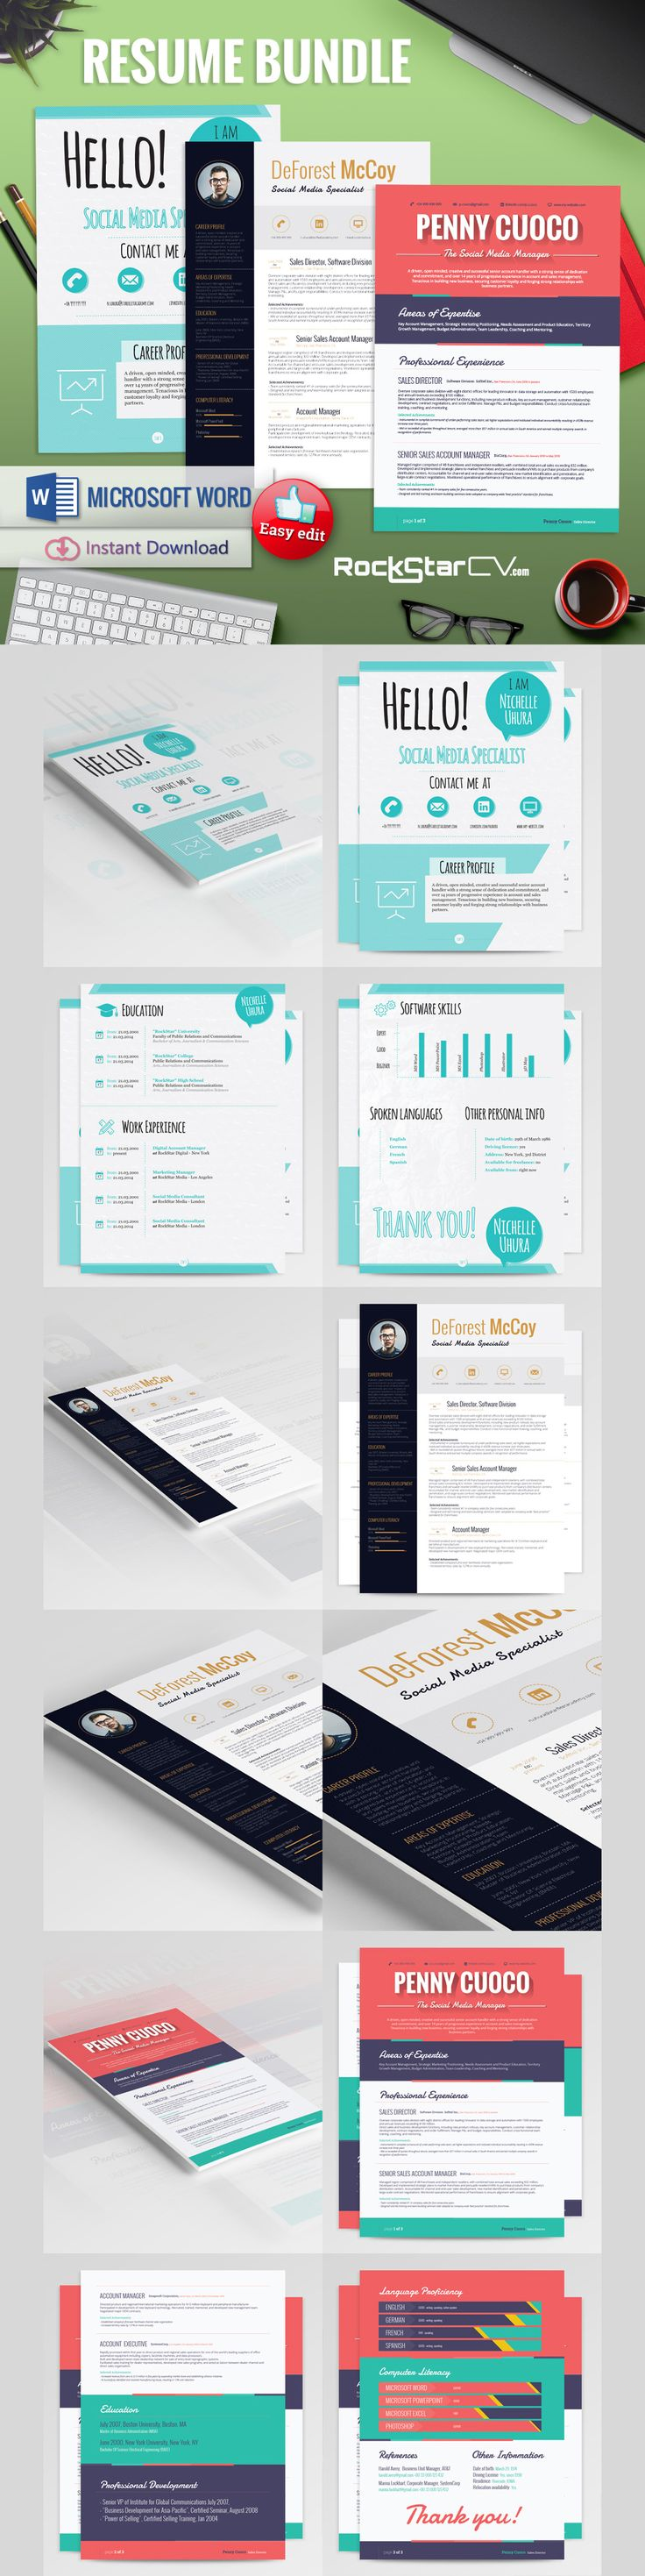 Resume Template Free Templates Free Business Resume